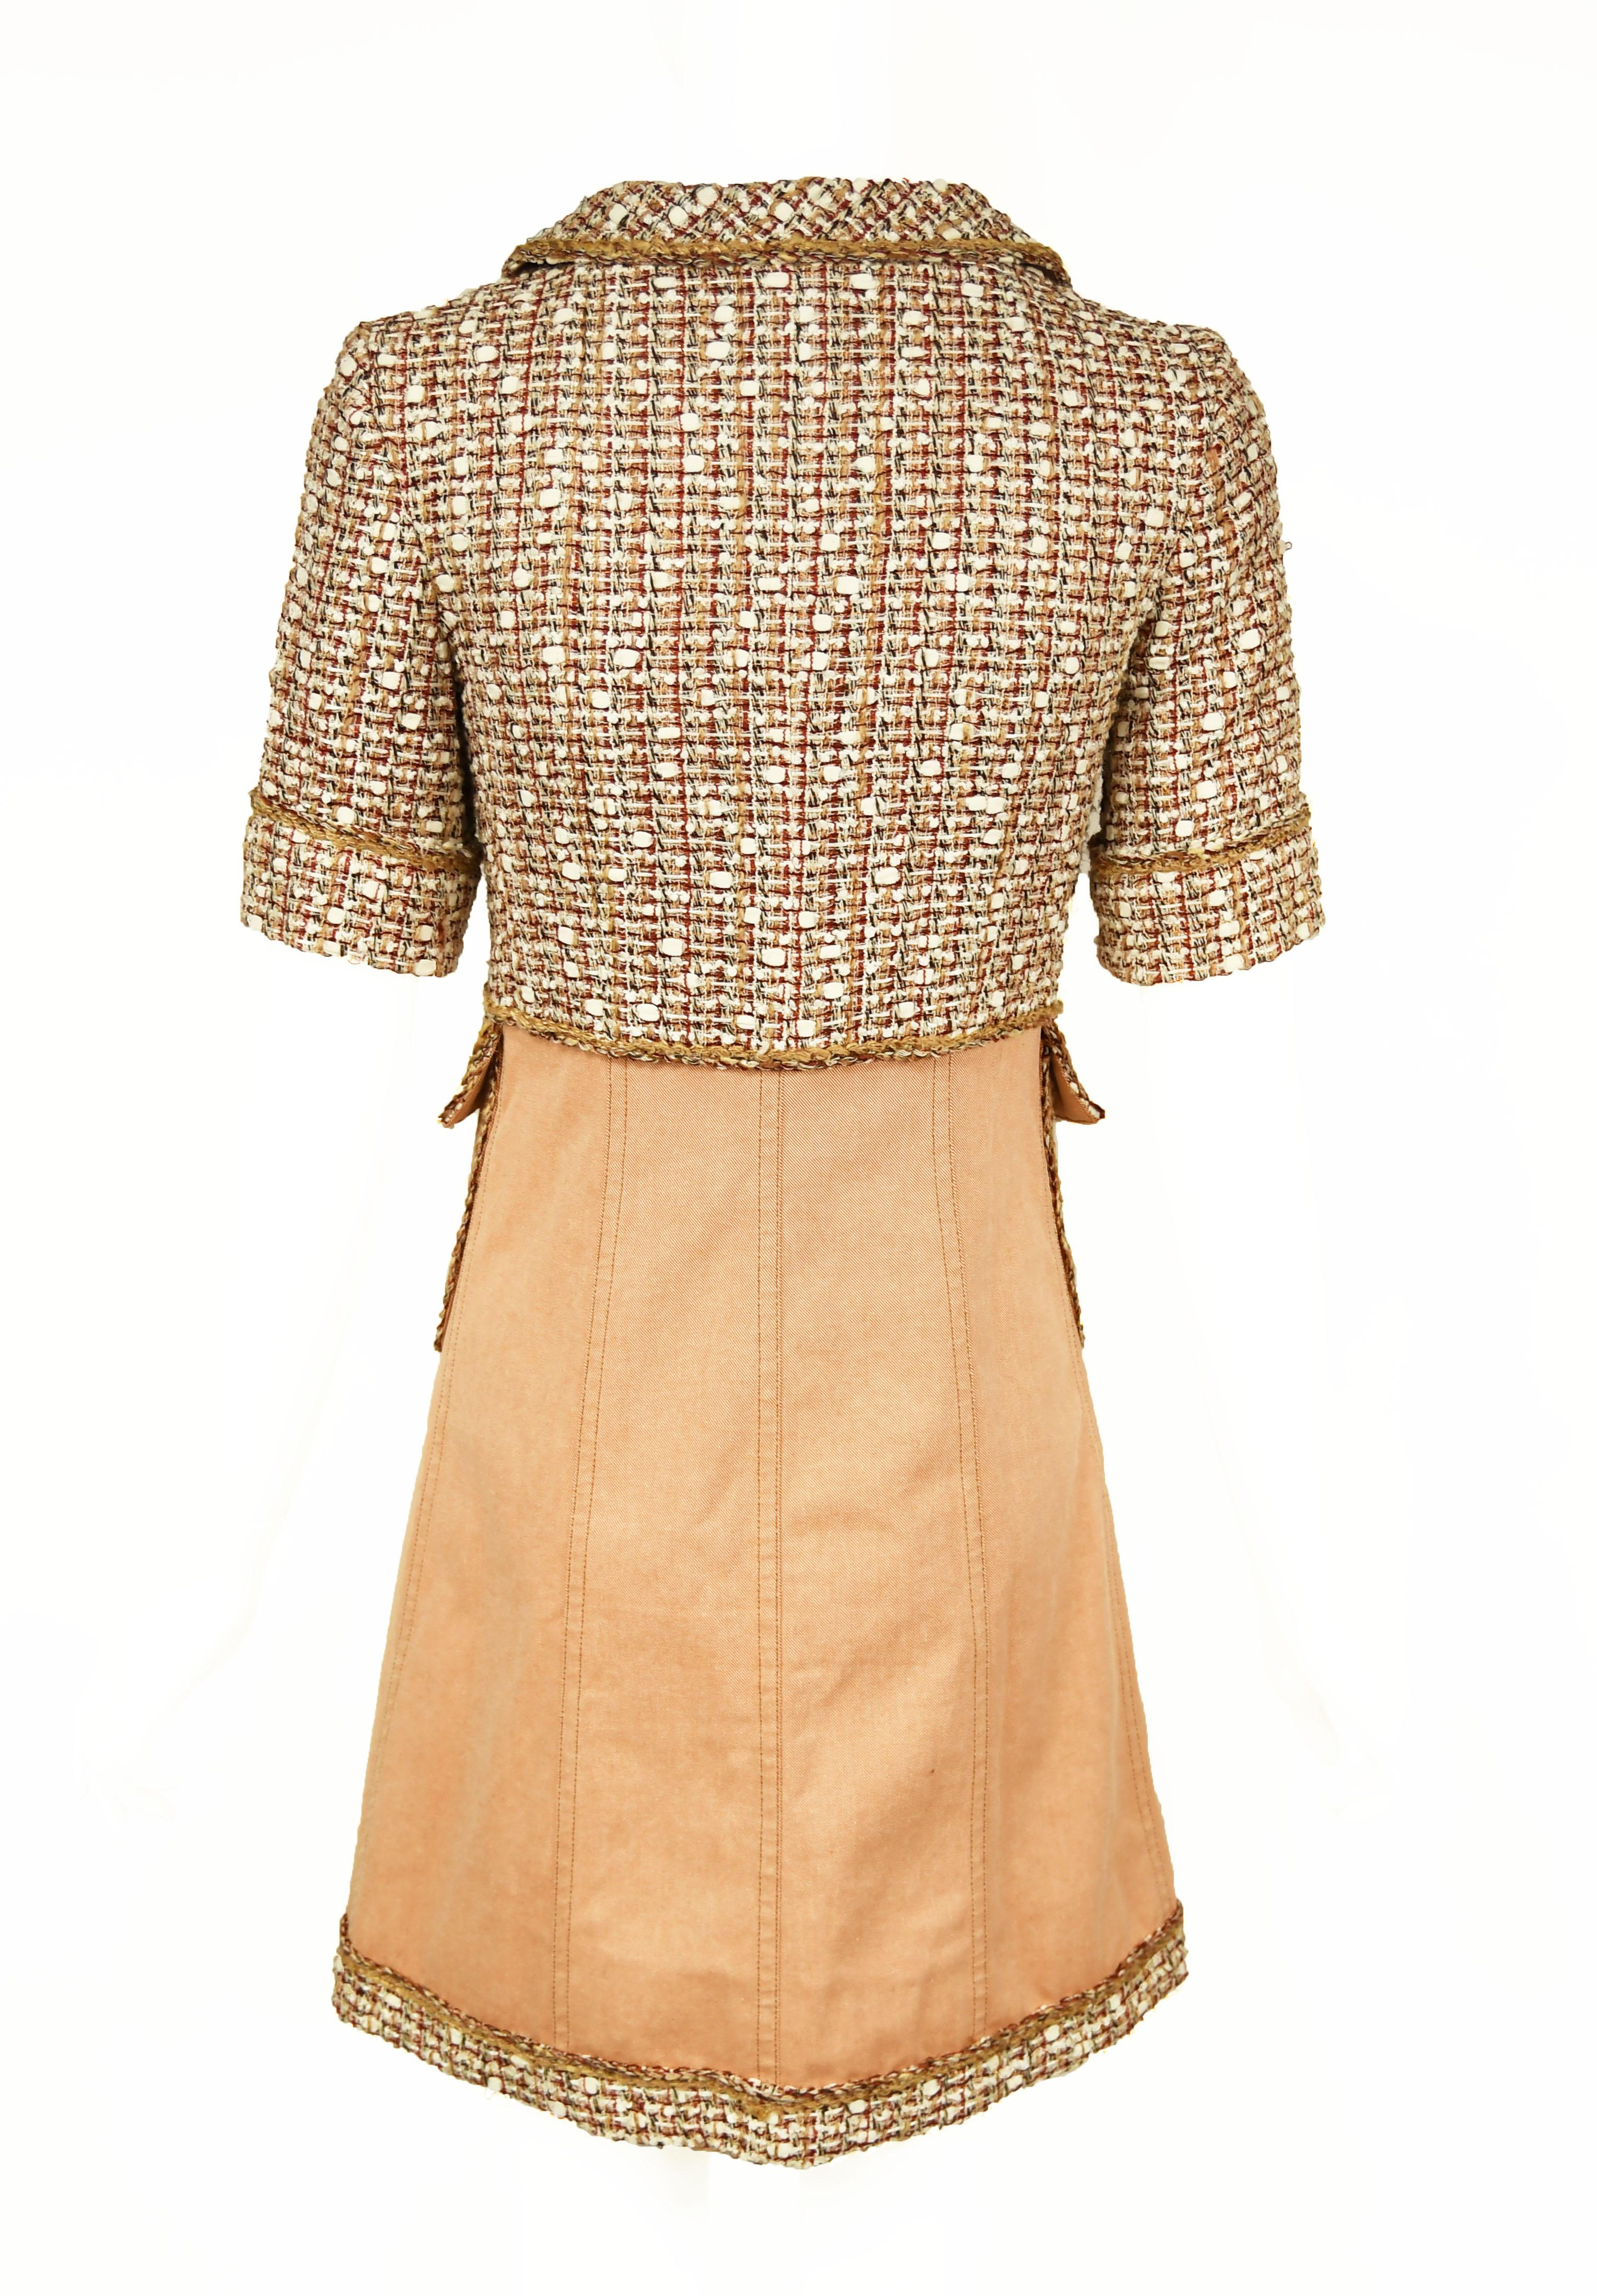 92088b18e82 Chanel Tweed and Twill A-Line Dress - Size FR 34 For Sale at 1stdibs